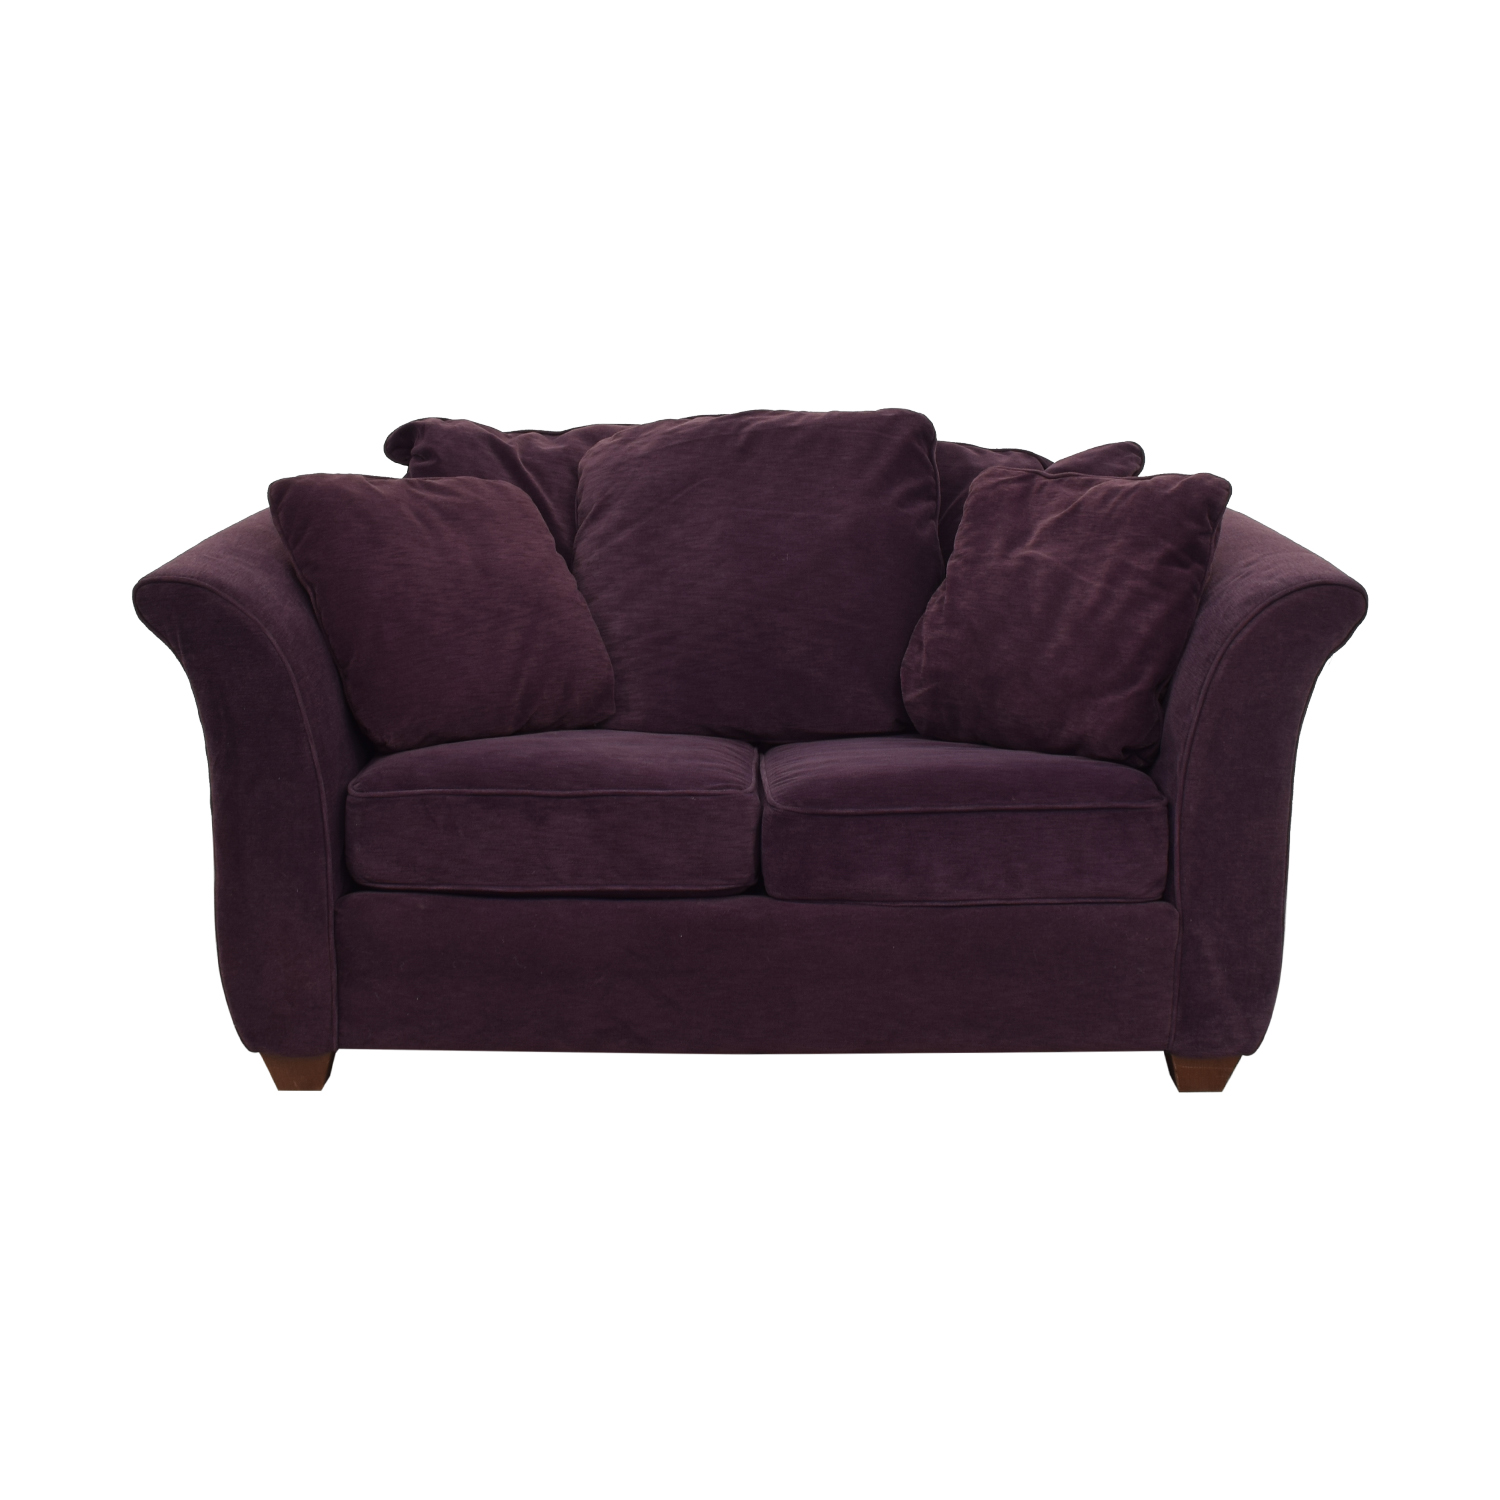 buy Bauhaus Furniture Plum Two-Cushion Loveseat Bauhaus Furniture